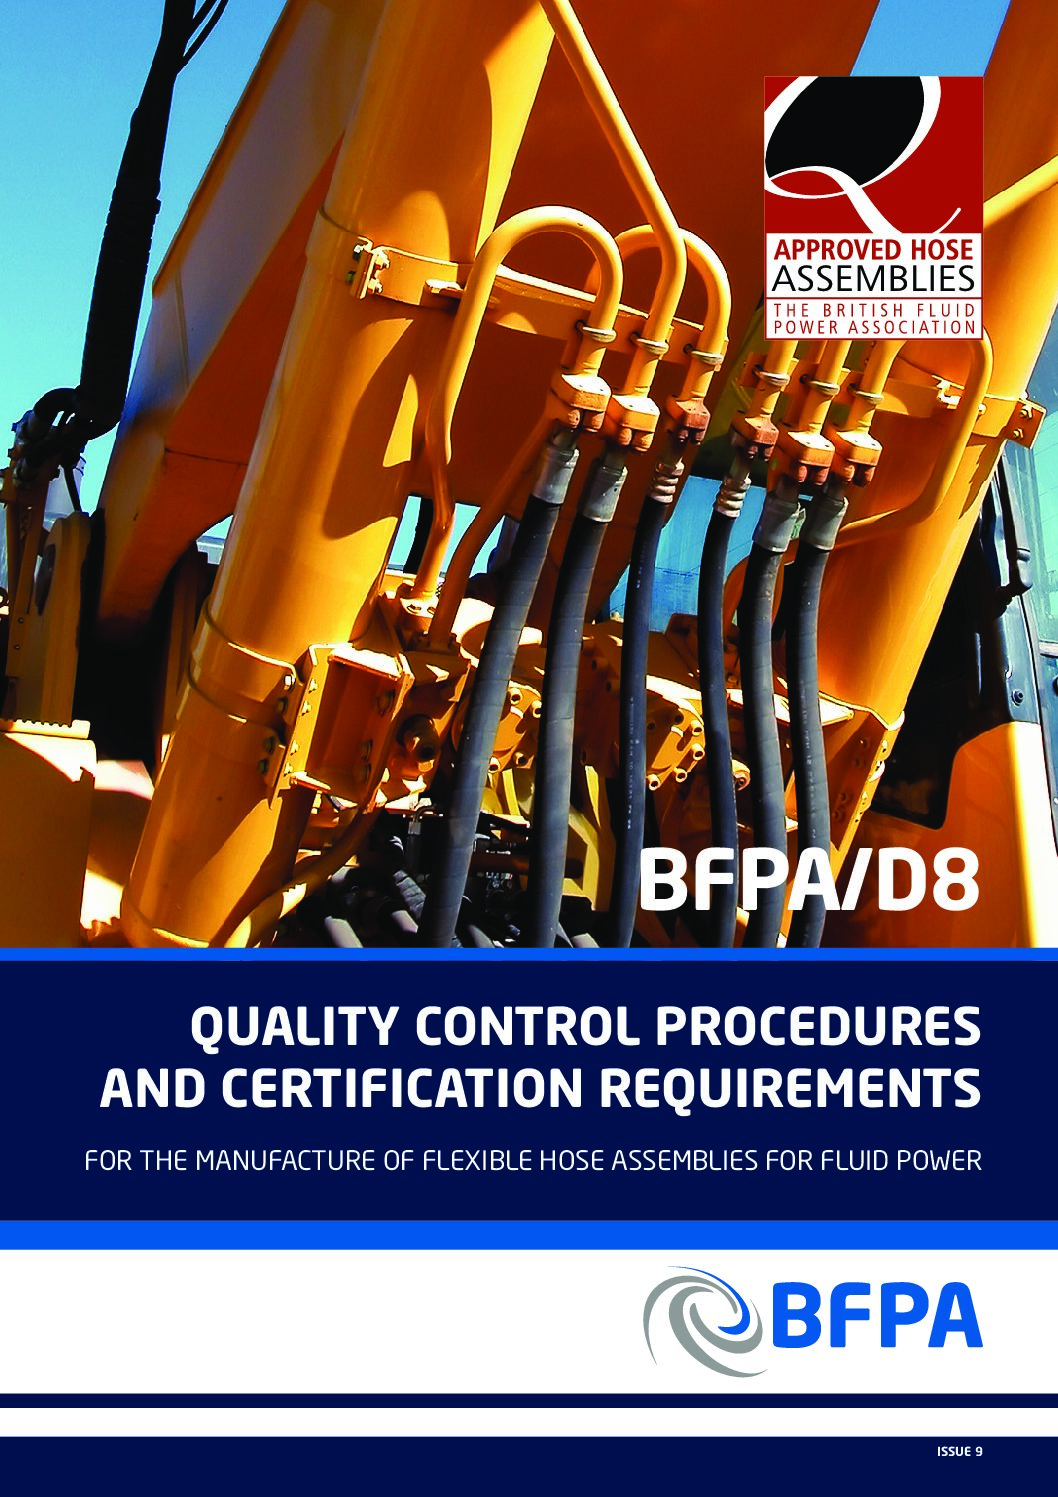 D8 Quality Control Procedures & Certification Requirements For BFPDA Distributors